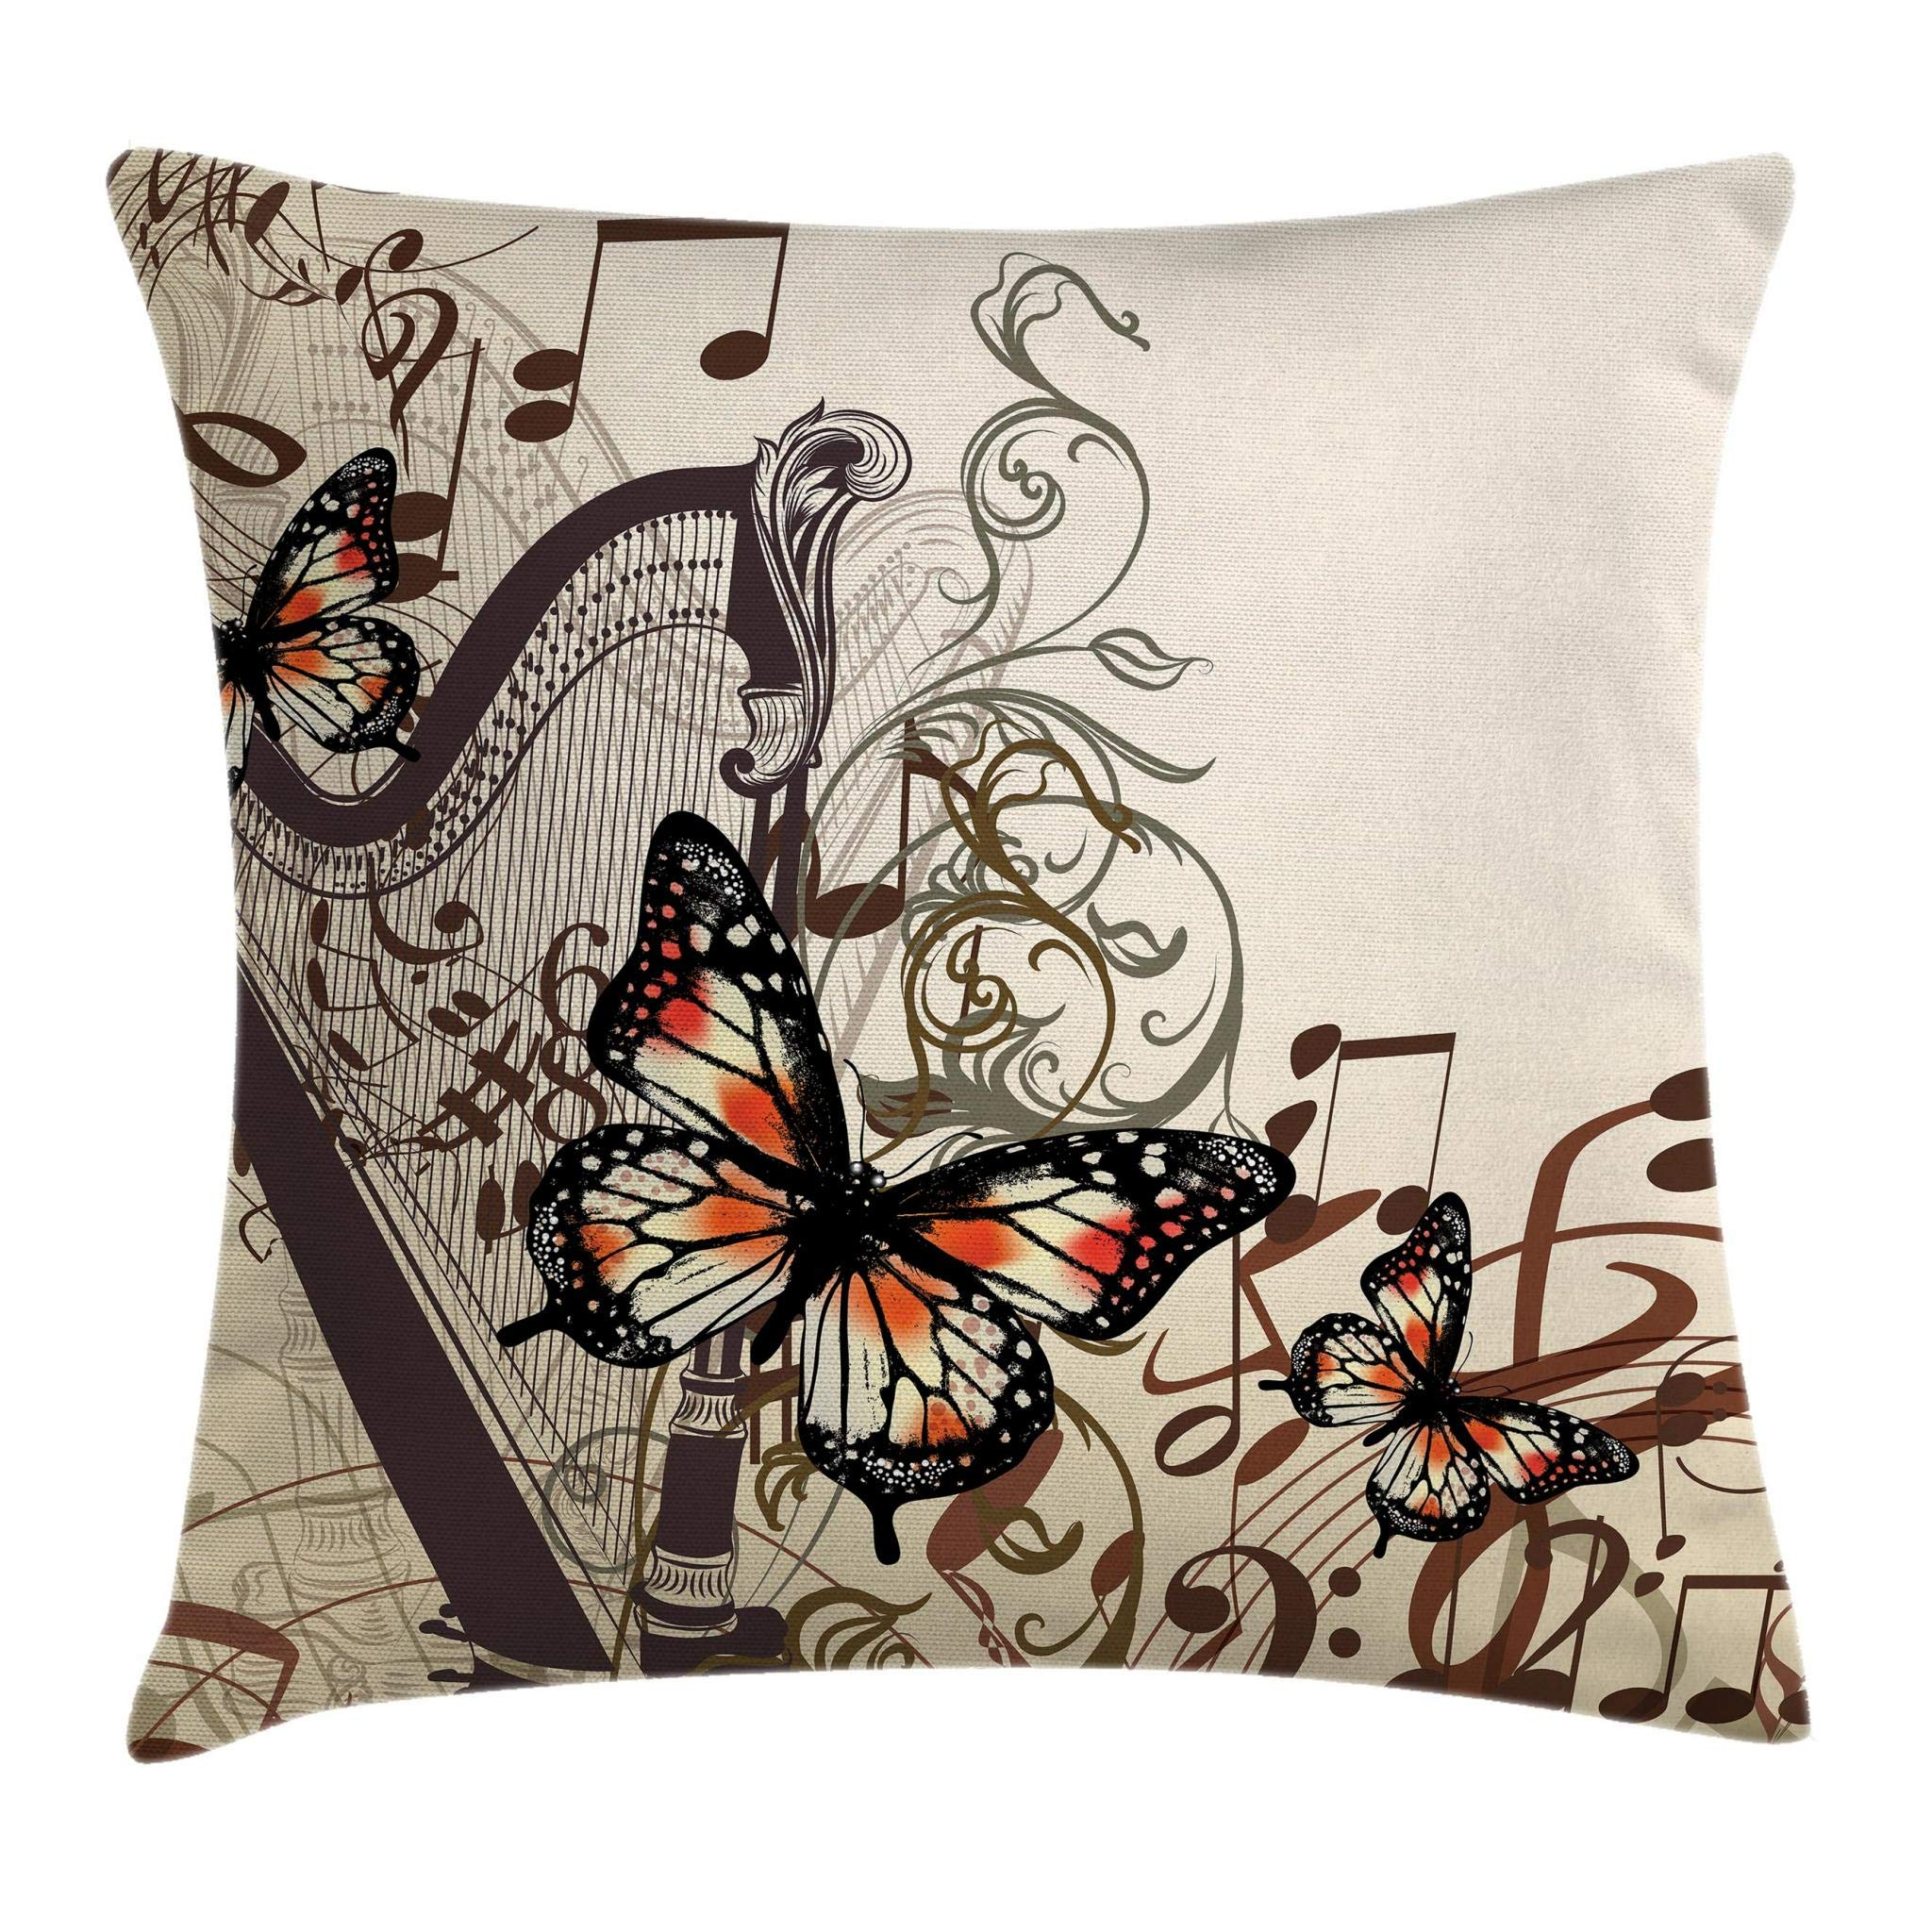 Ambesonne Butterflies Decoration Throw Pillow Cushion Cover, Harp Ornament and Butterflies Classic Musical Instrument Concert Theme, Decorative Square Accent Pillow Case, 16 X 16 Inches, Brown